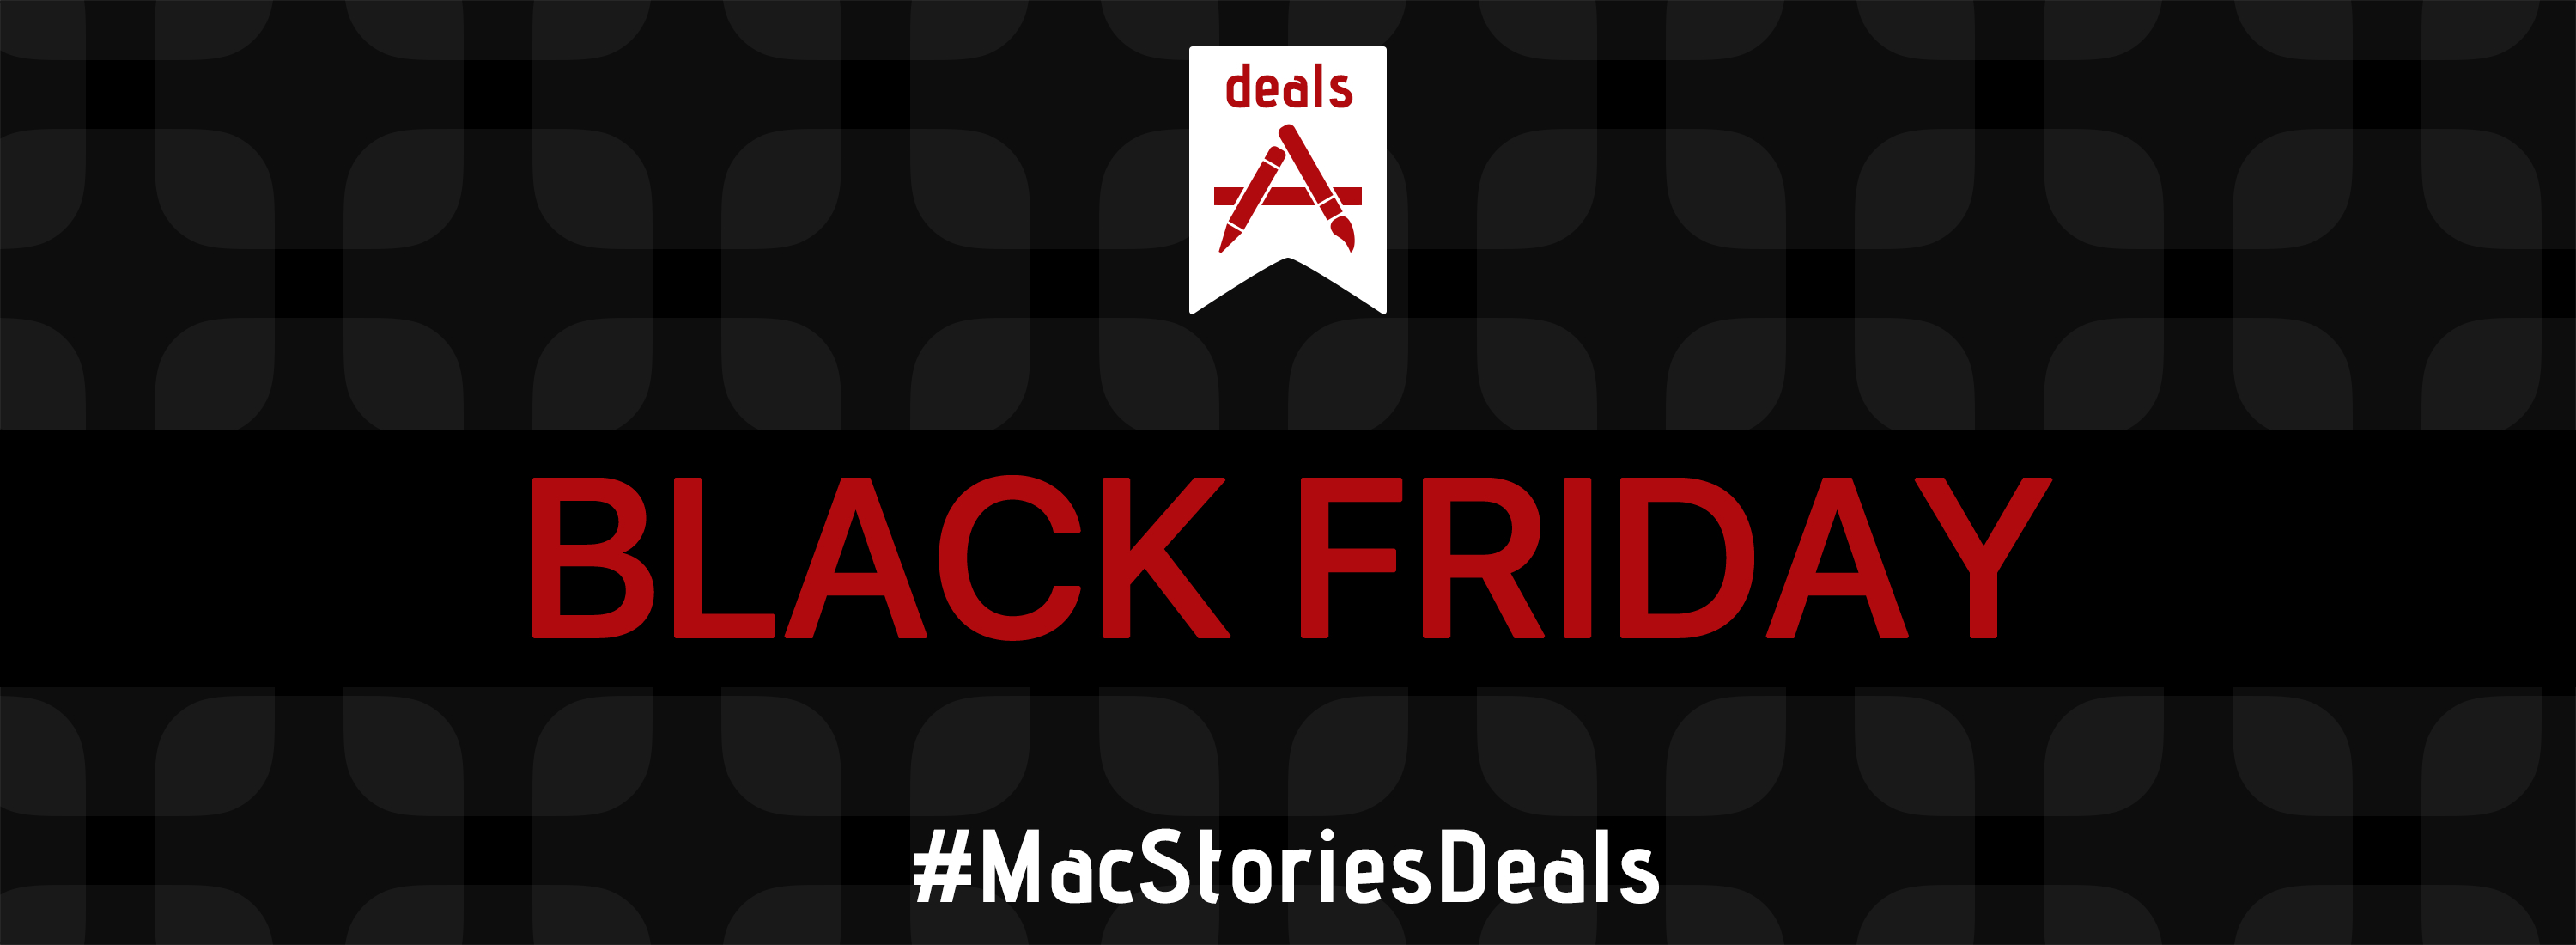 MacStoriesDeals Black Friday 2017: The Best Deals for iPhone